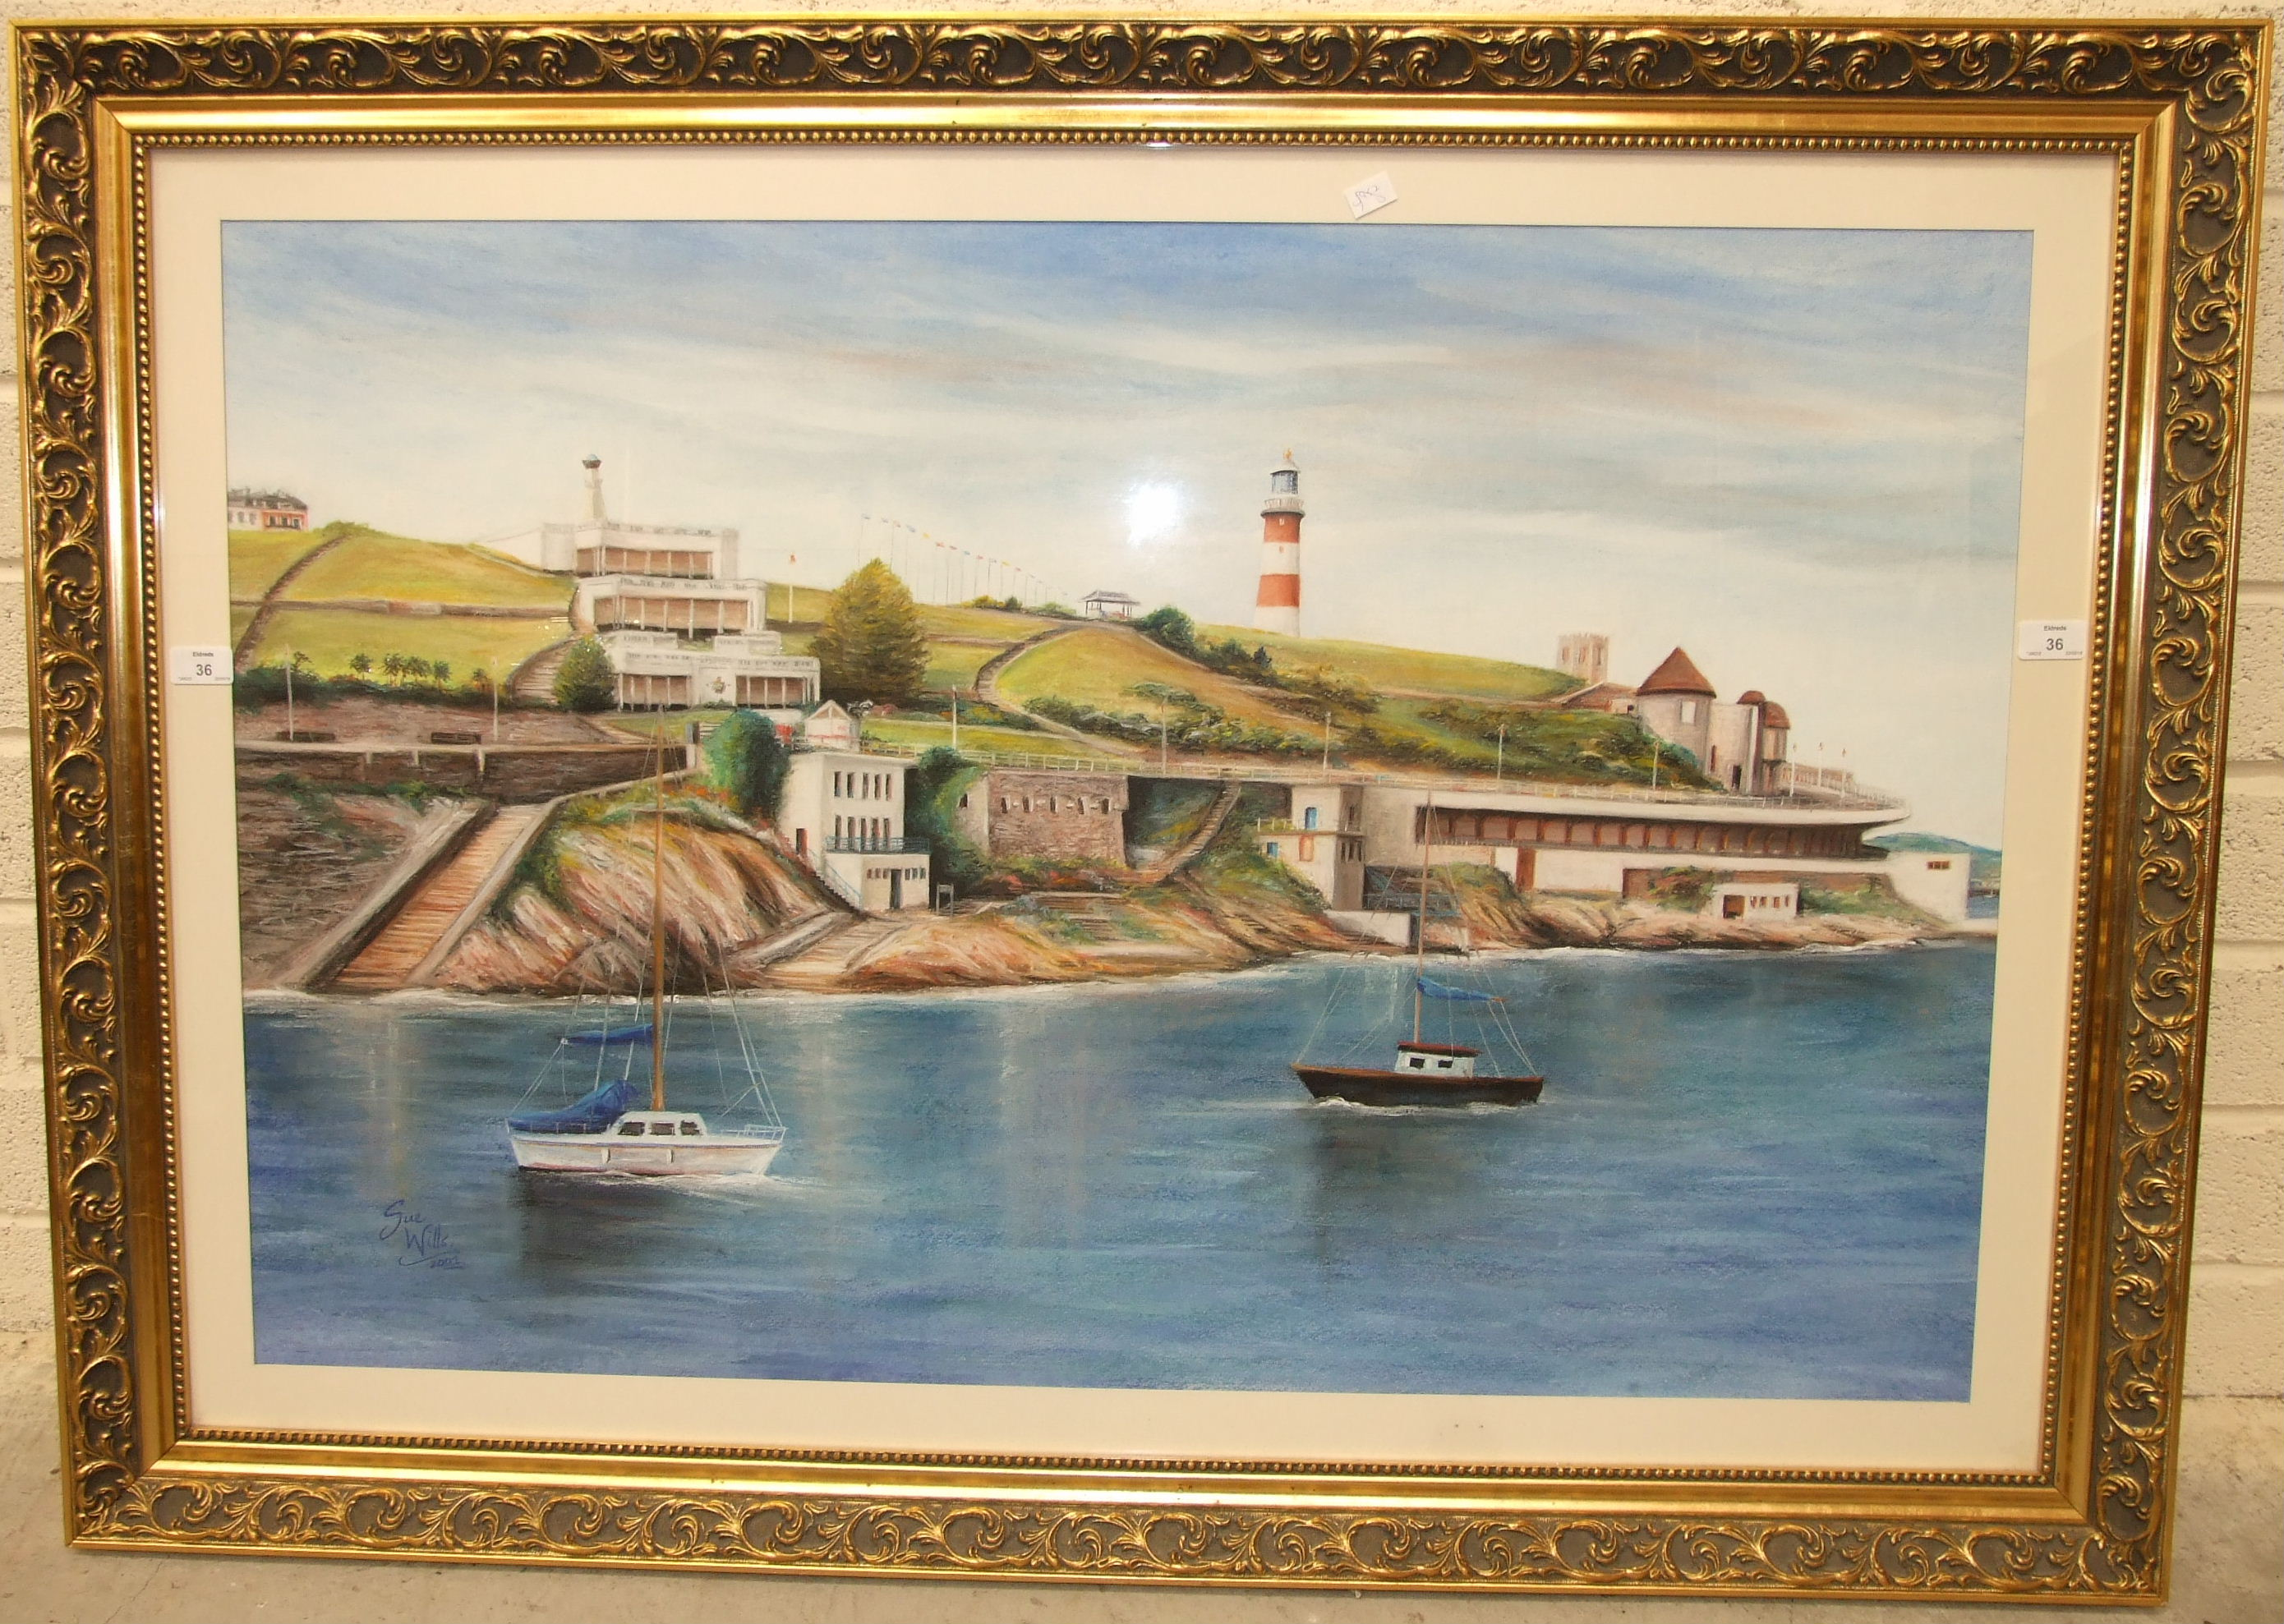 •Sue Wills (b. 1962) THE HOE, FORESHORE, PLYMOUTH Signed pastel, dated 2002, 67 x 103cm.